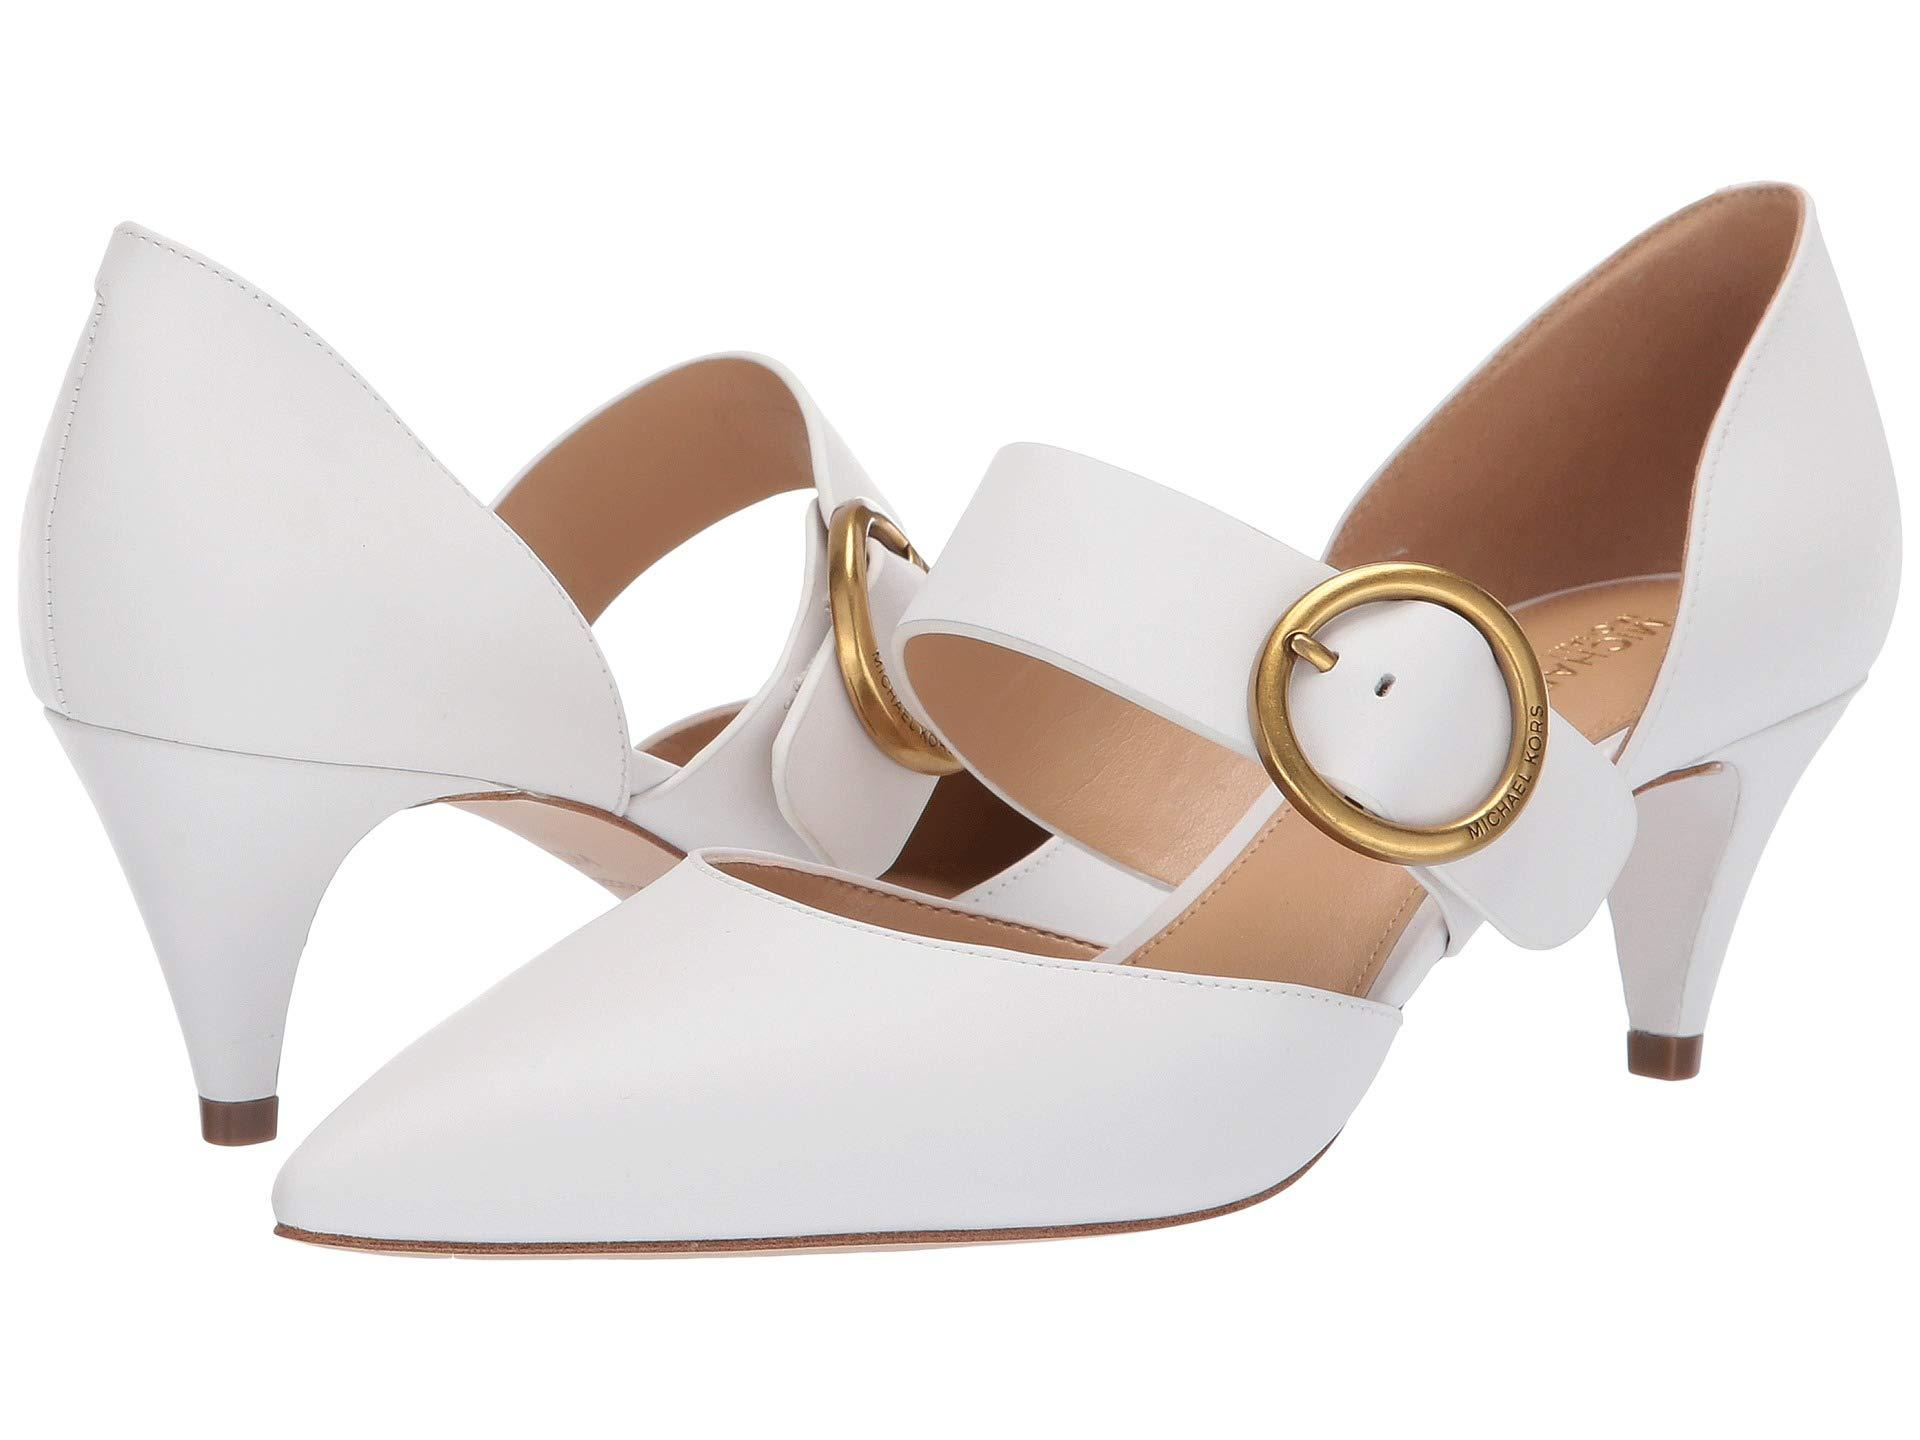 d0747e7f5c66 Lyst - MICHAEL Michael Kors Estelle Kitten Pump in White - Save 53%